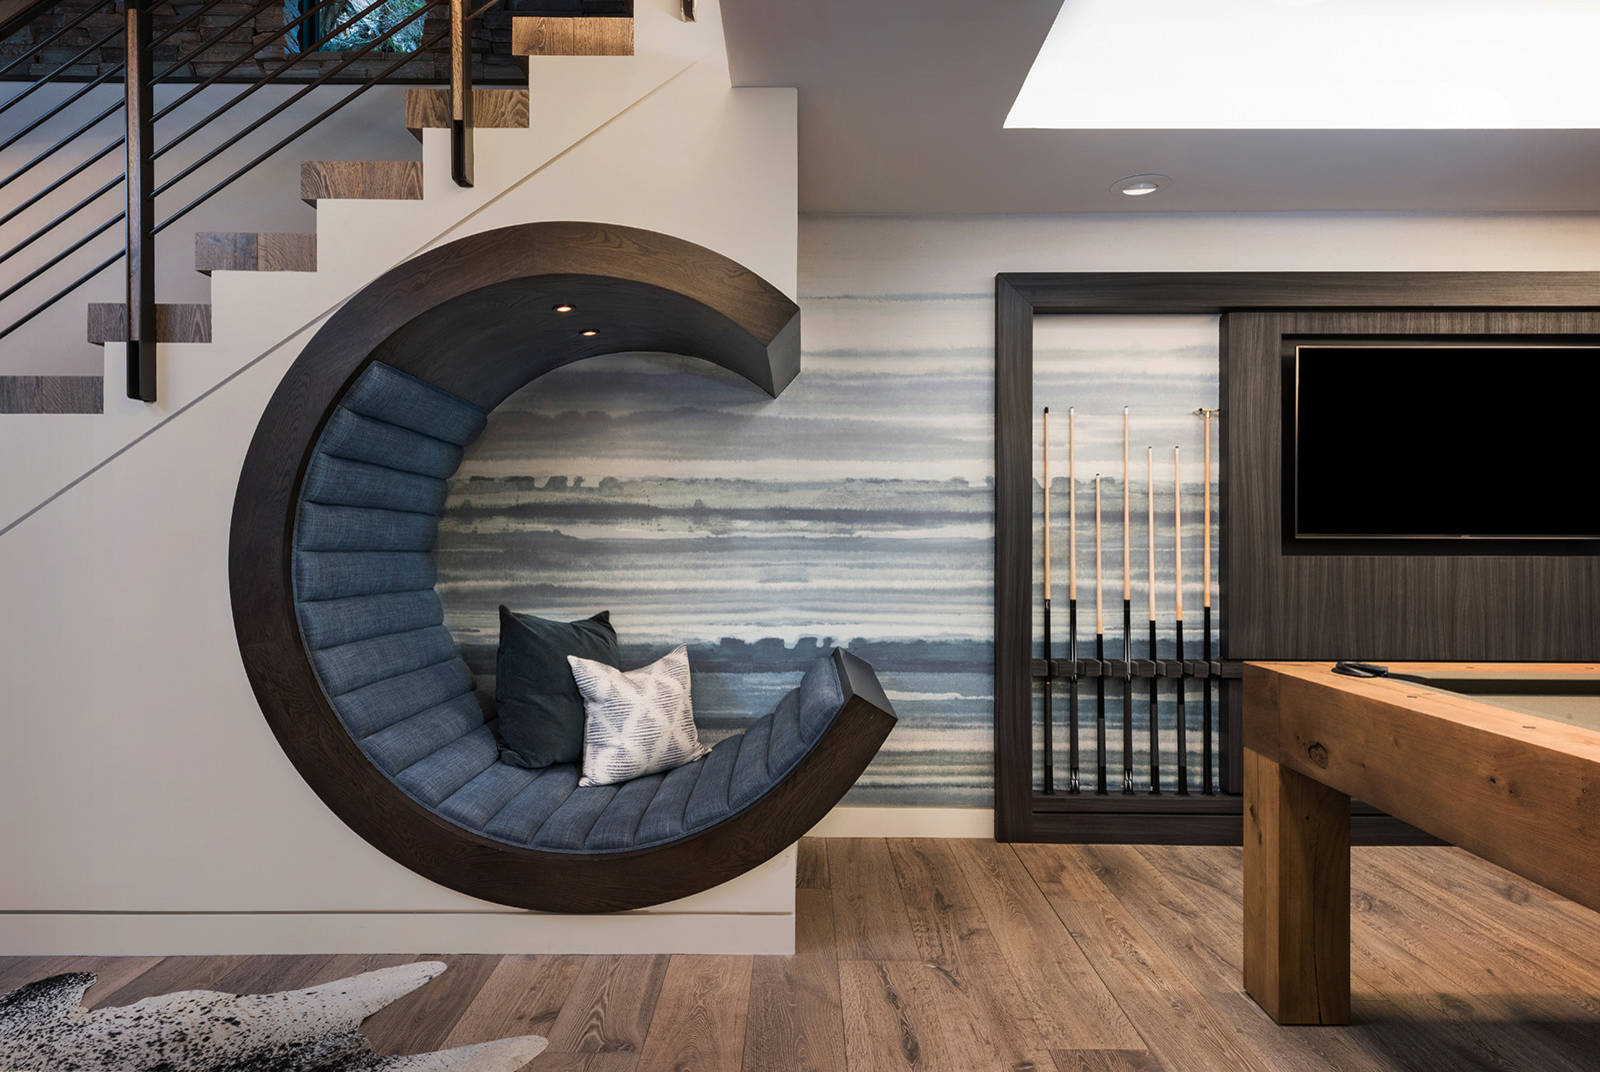 75 Beautiful Basement Game Room Pictures Ideas February 2021 Houzz